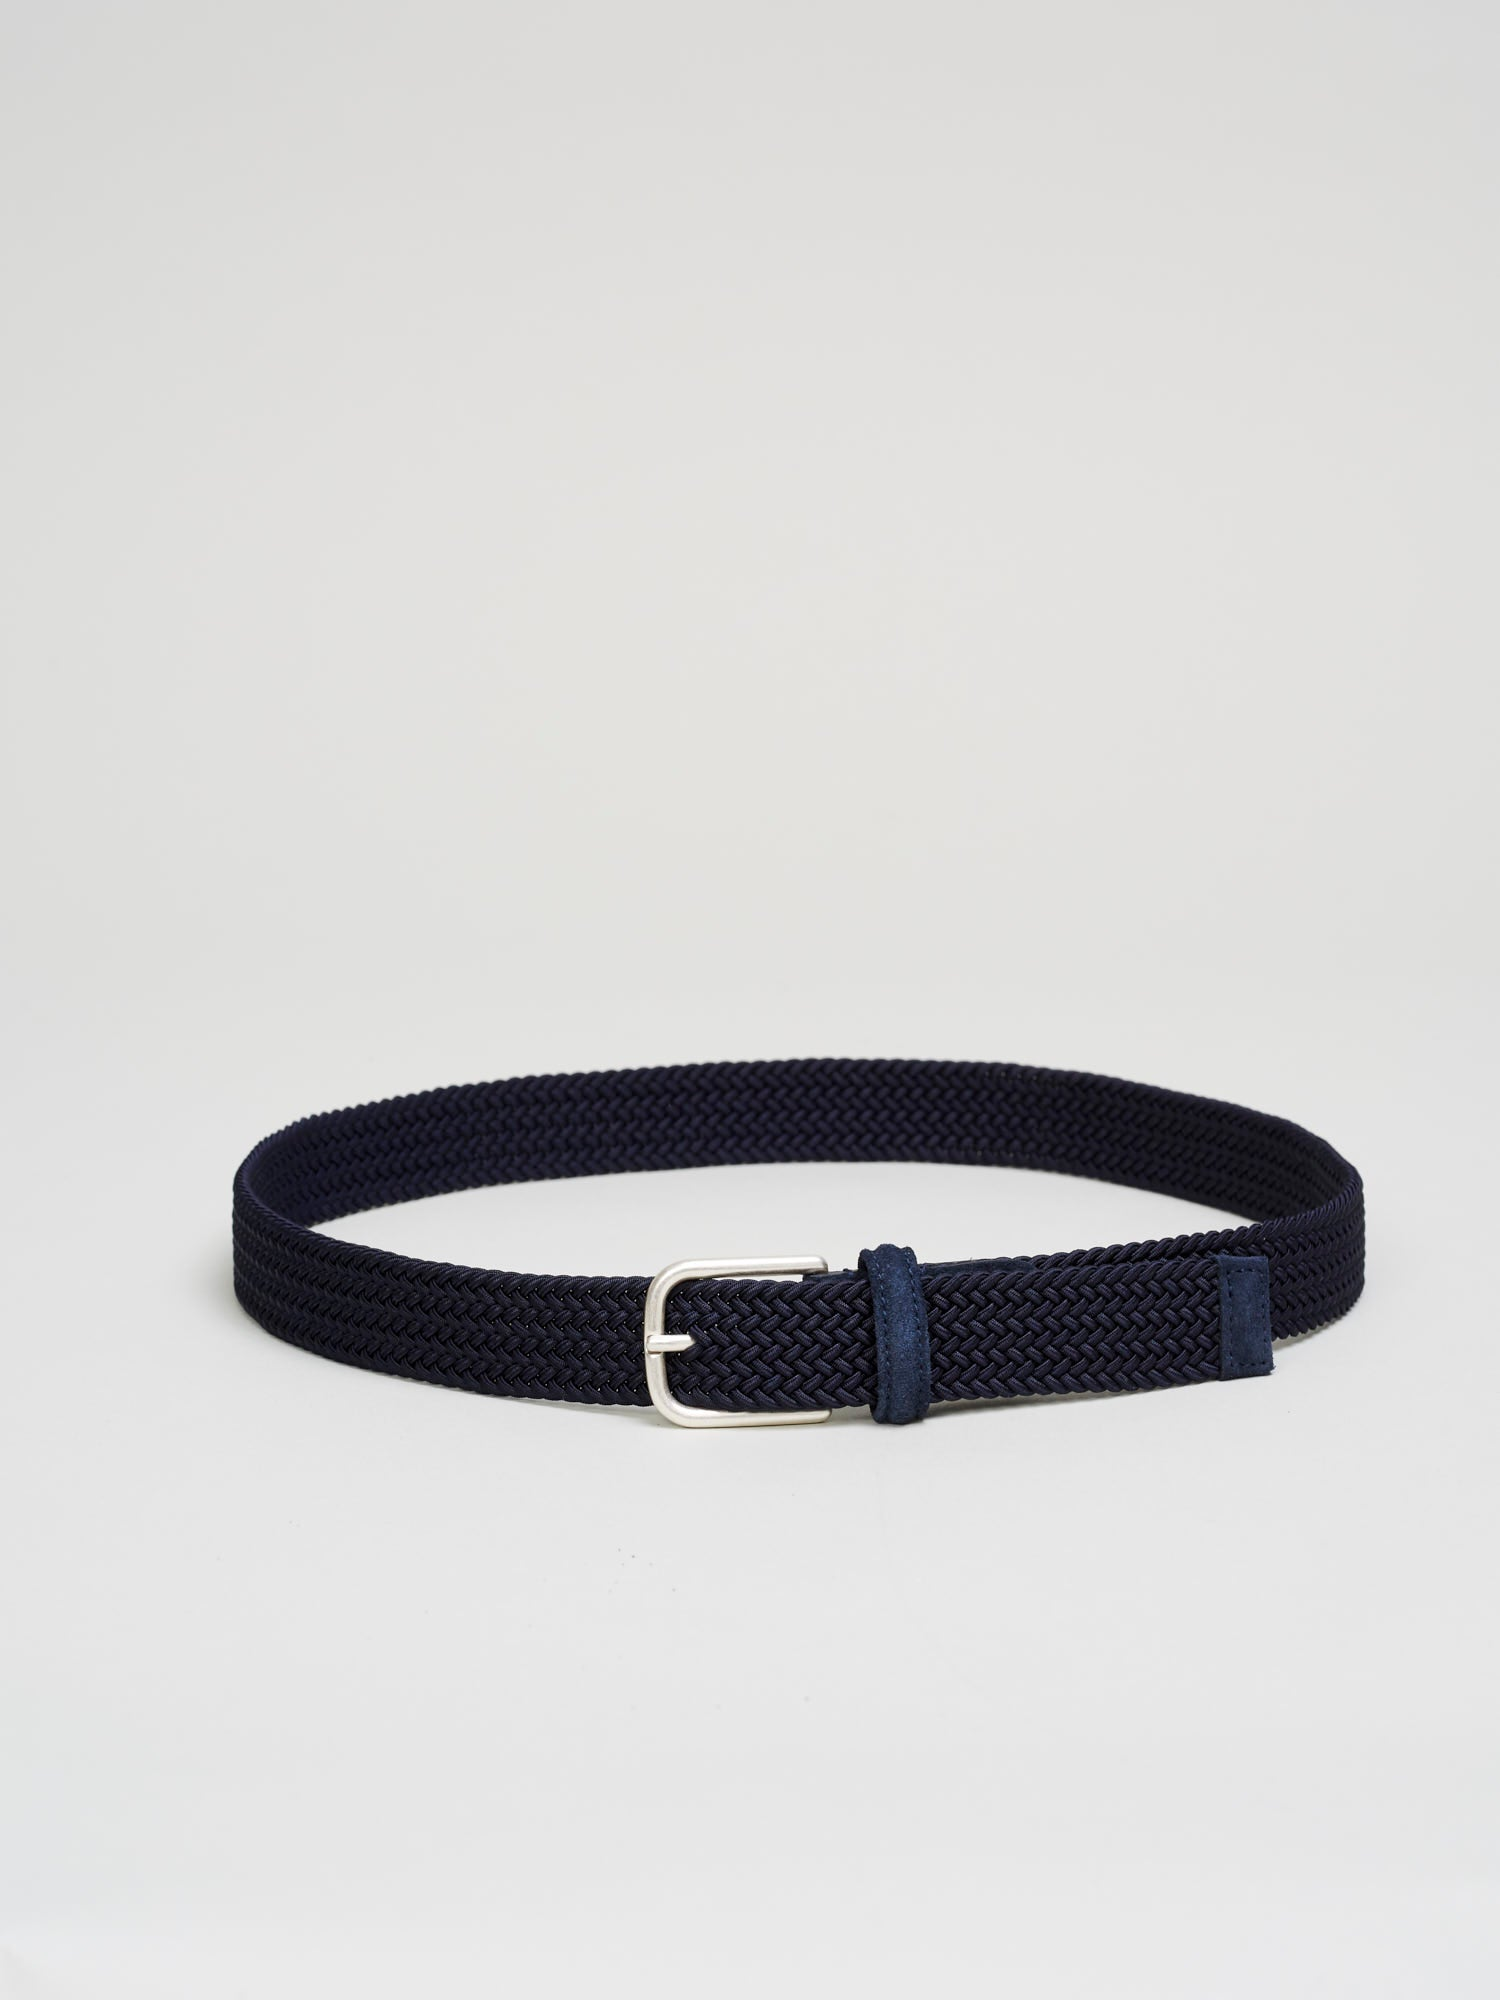 Braided Stretch Nylon Belt, Navy - Goods